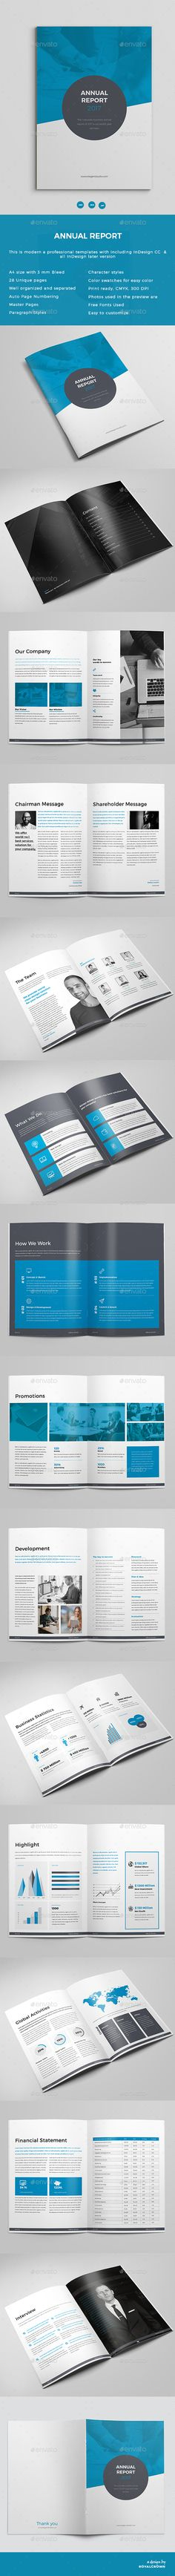 Annual Report  — InDesign Template #informational #a4 • Download ➝ https://graphicriver.net/item/annual-report/18069478?ref=pxcr